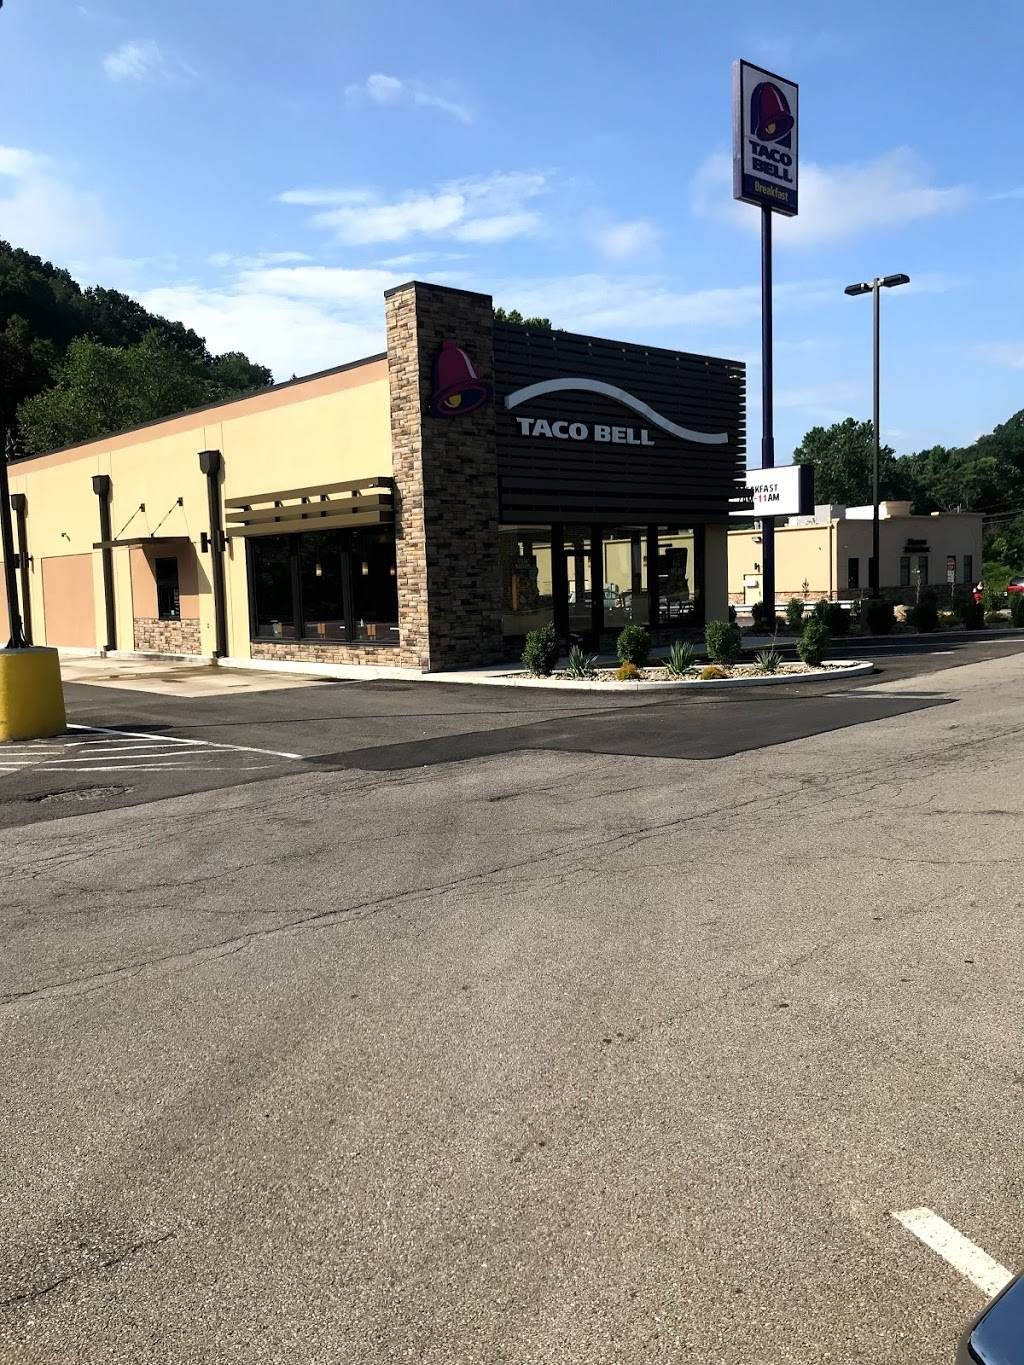 Taco Bell | meal takeaway | 880 Butler St, Pittsburgh, PA 15223, USA | 4124082645 OR +1 412-408-2645